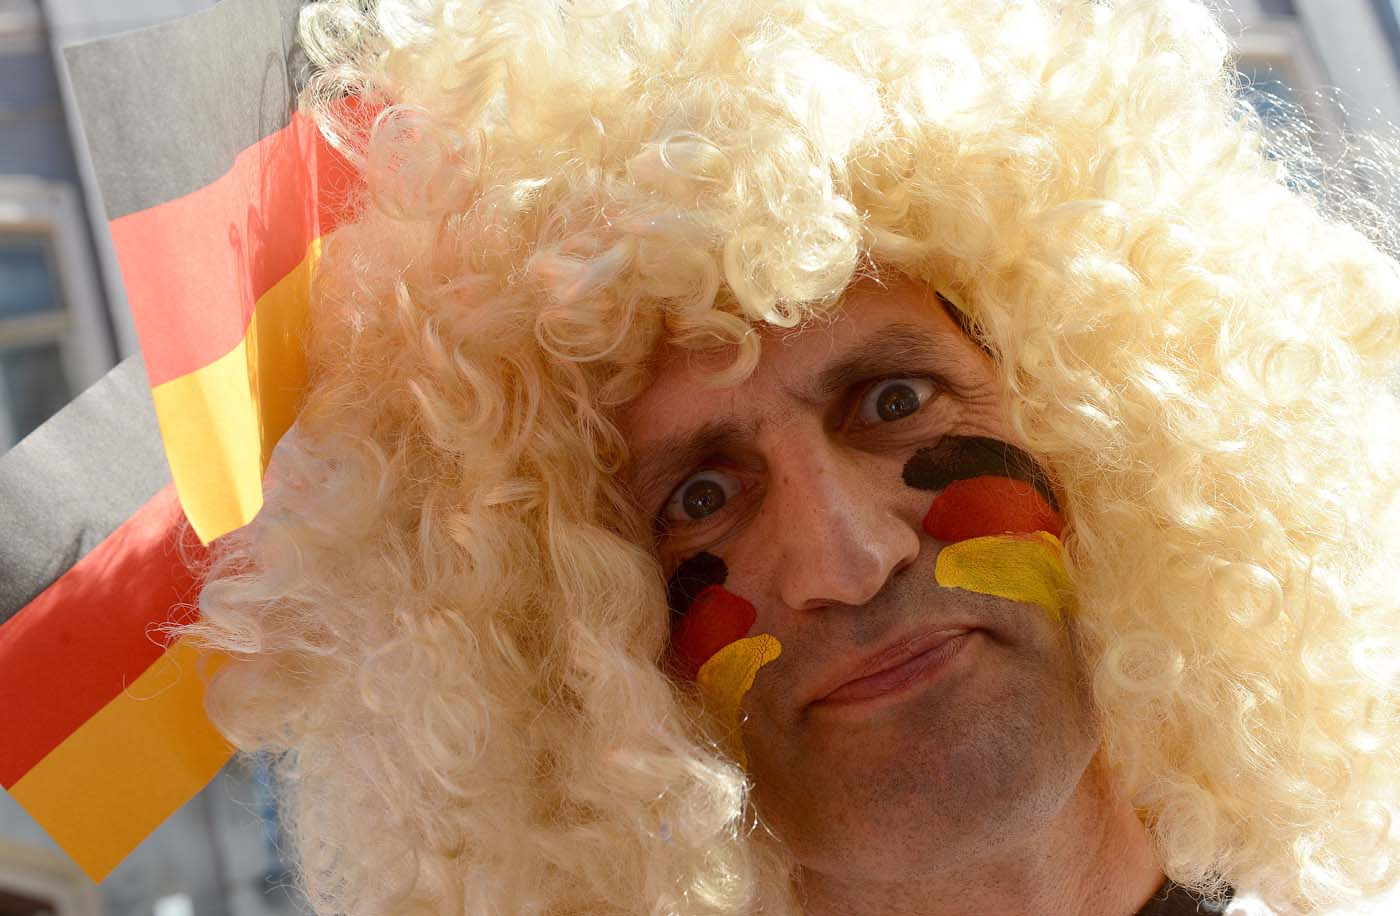 A German fan is pictured on June 17, 2012 in Lviv, ahead of the Euro 2012 football championships match Denmark vs. Germany. (Patrik Stollarz/AFP/Getty Images)